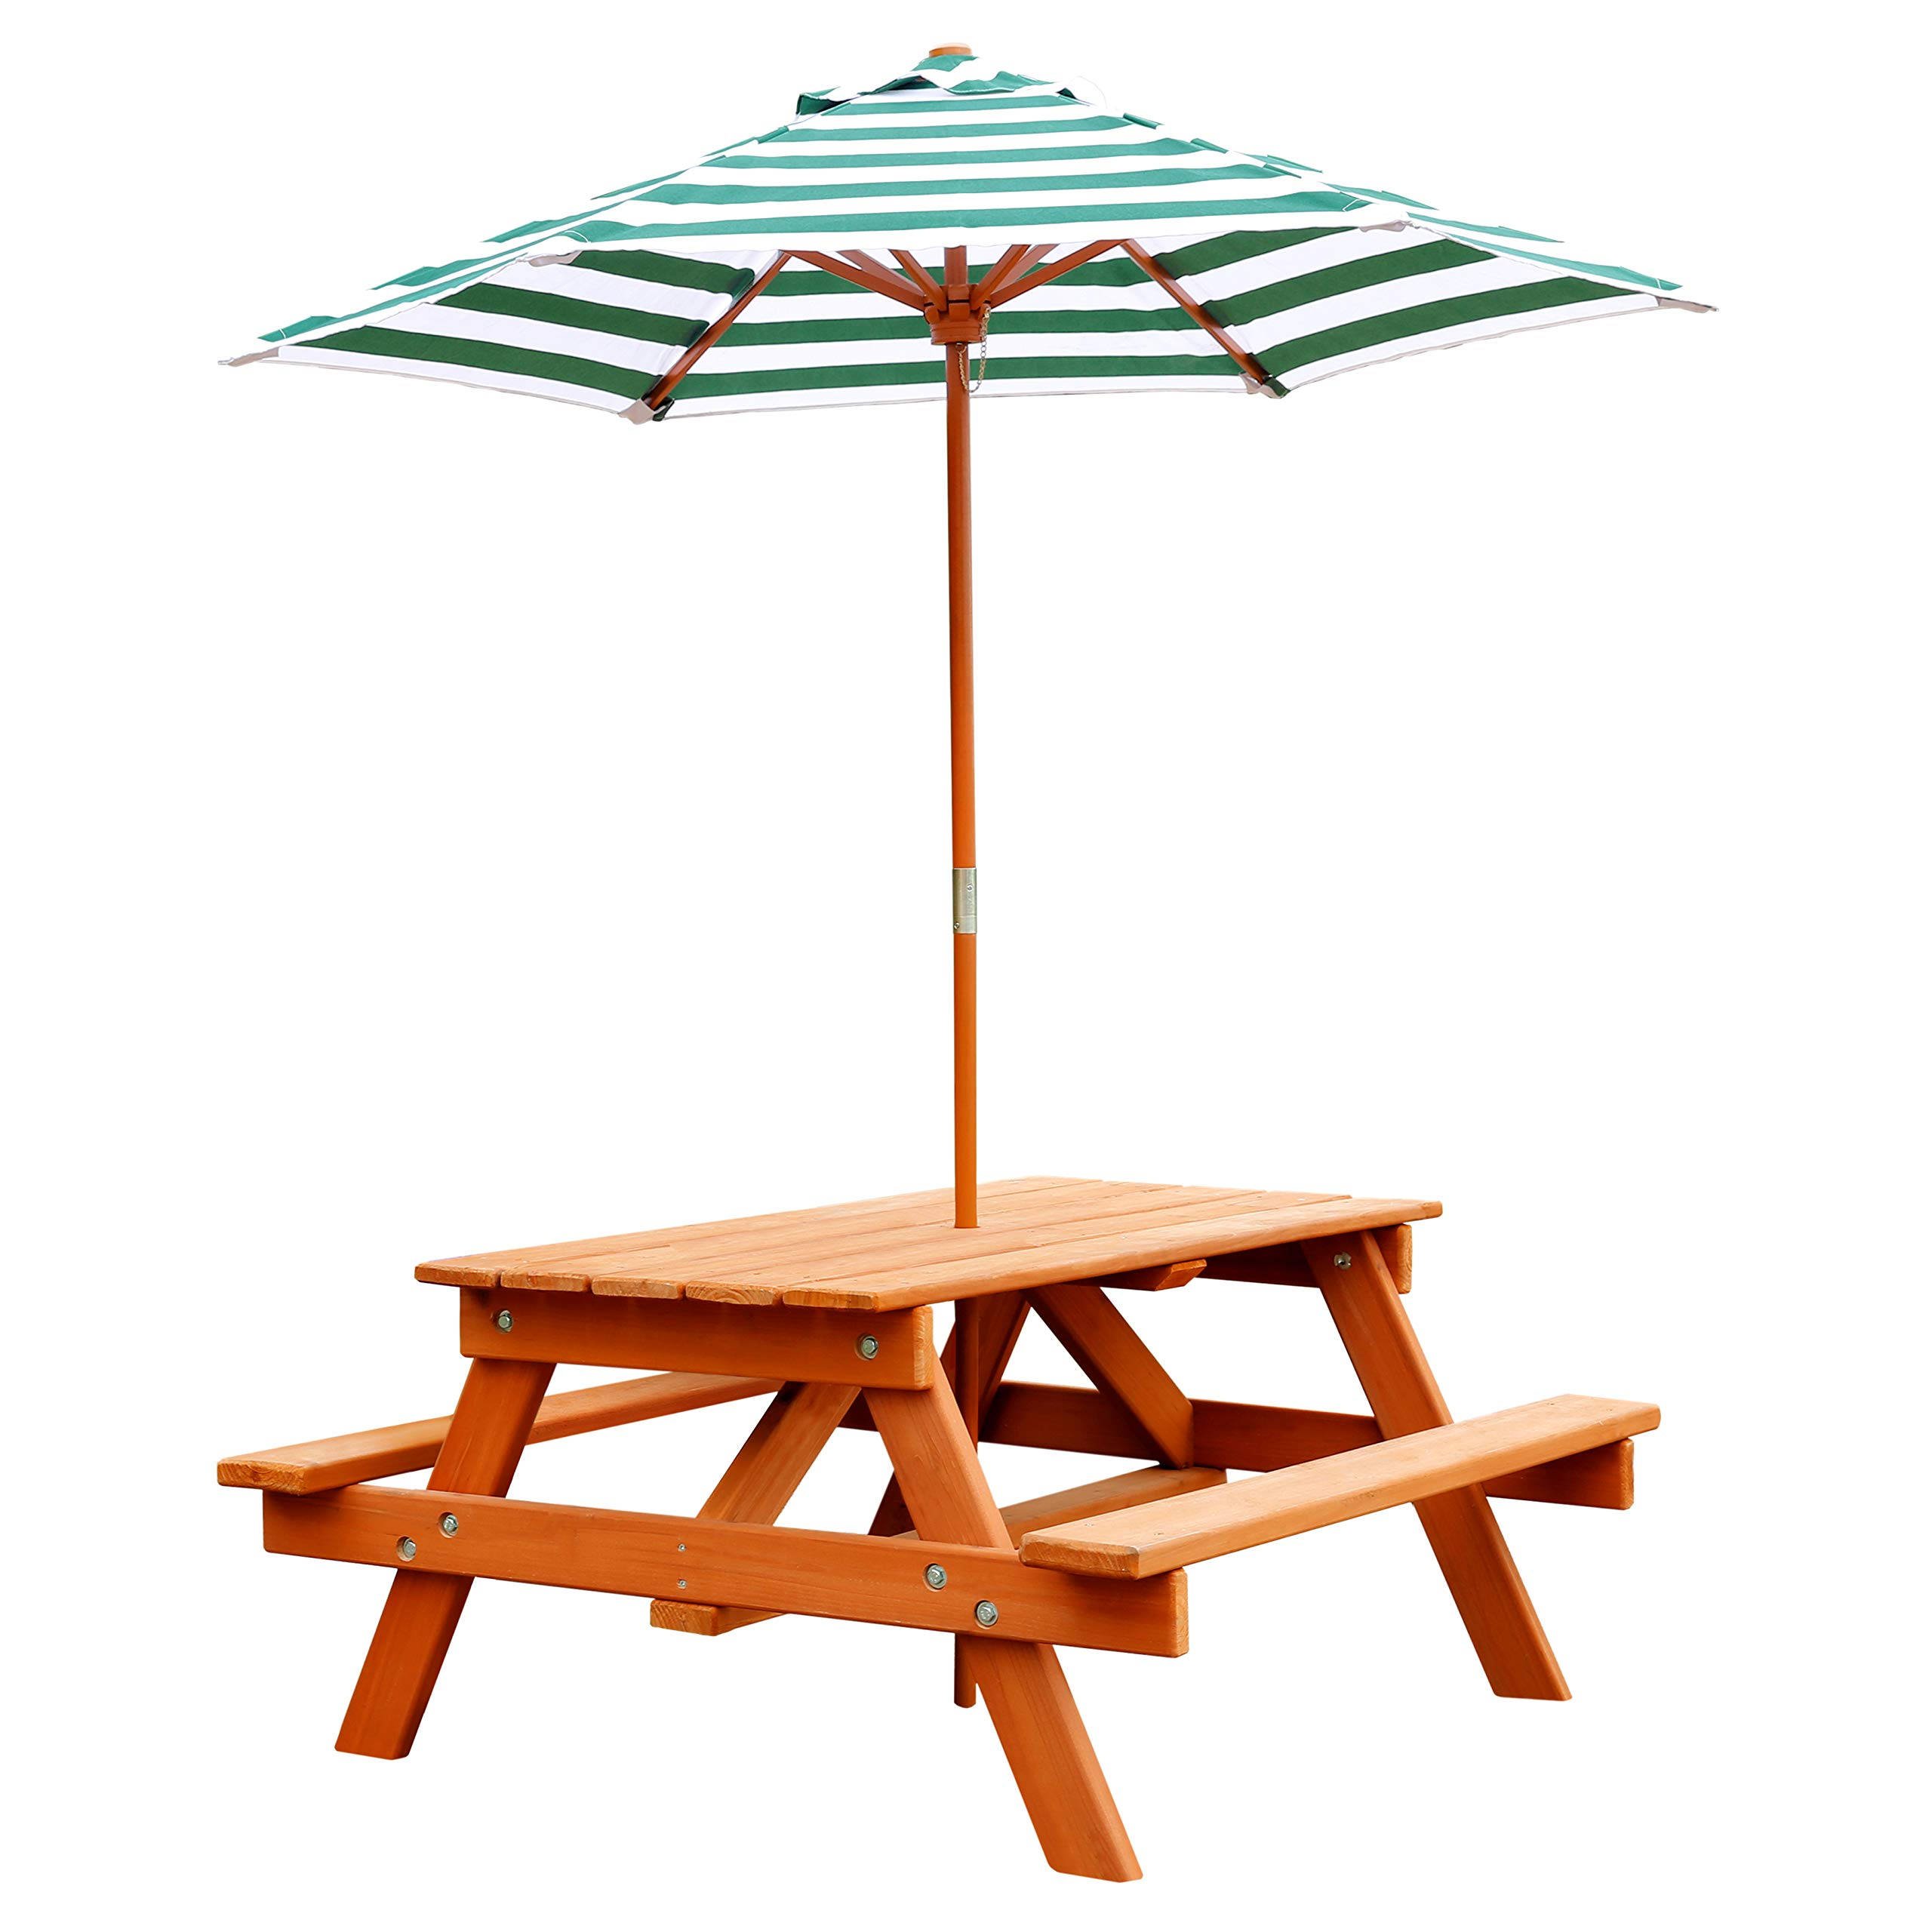 Jur_Global Wooden Children's Picnic Table with Umbrella by Jur_Global (Image #3)